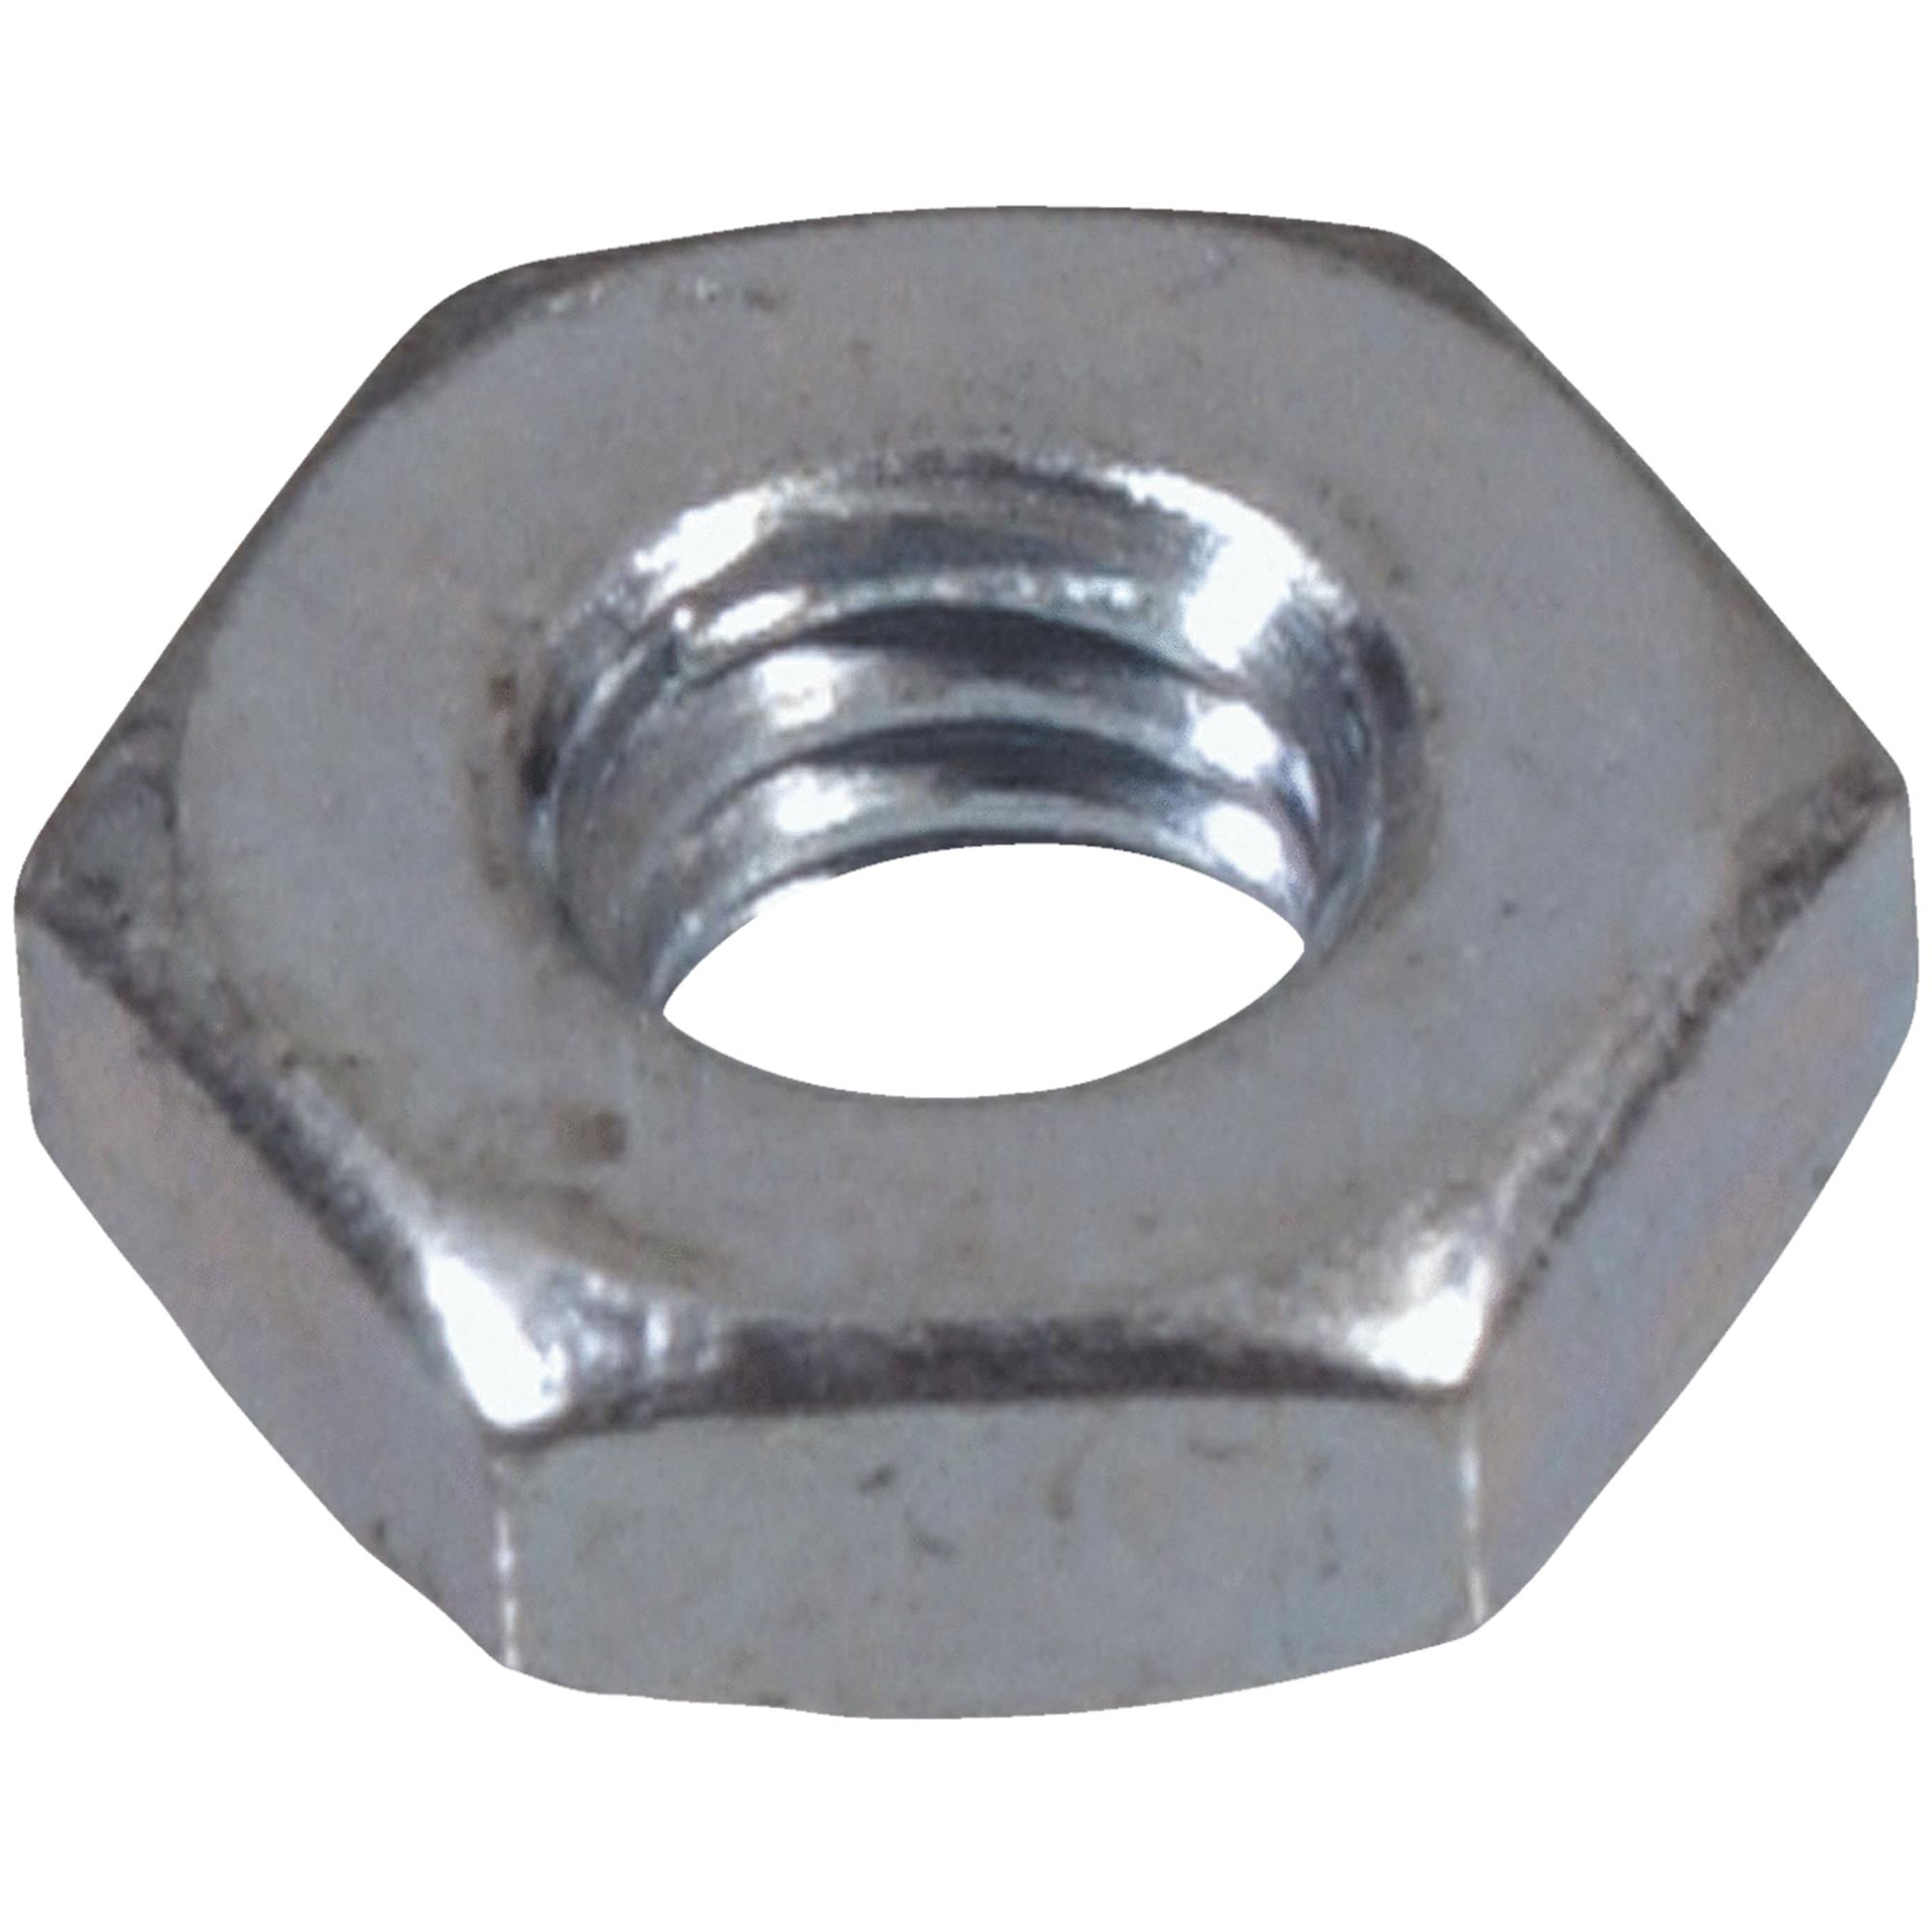 Hillman Fastener Corp 8-32 Hex Mach Screw Nut 140018